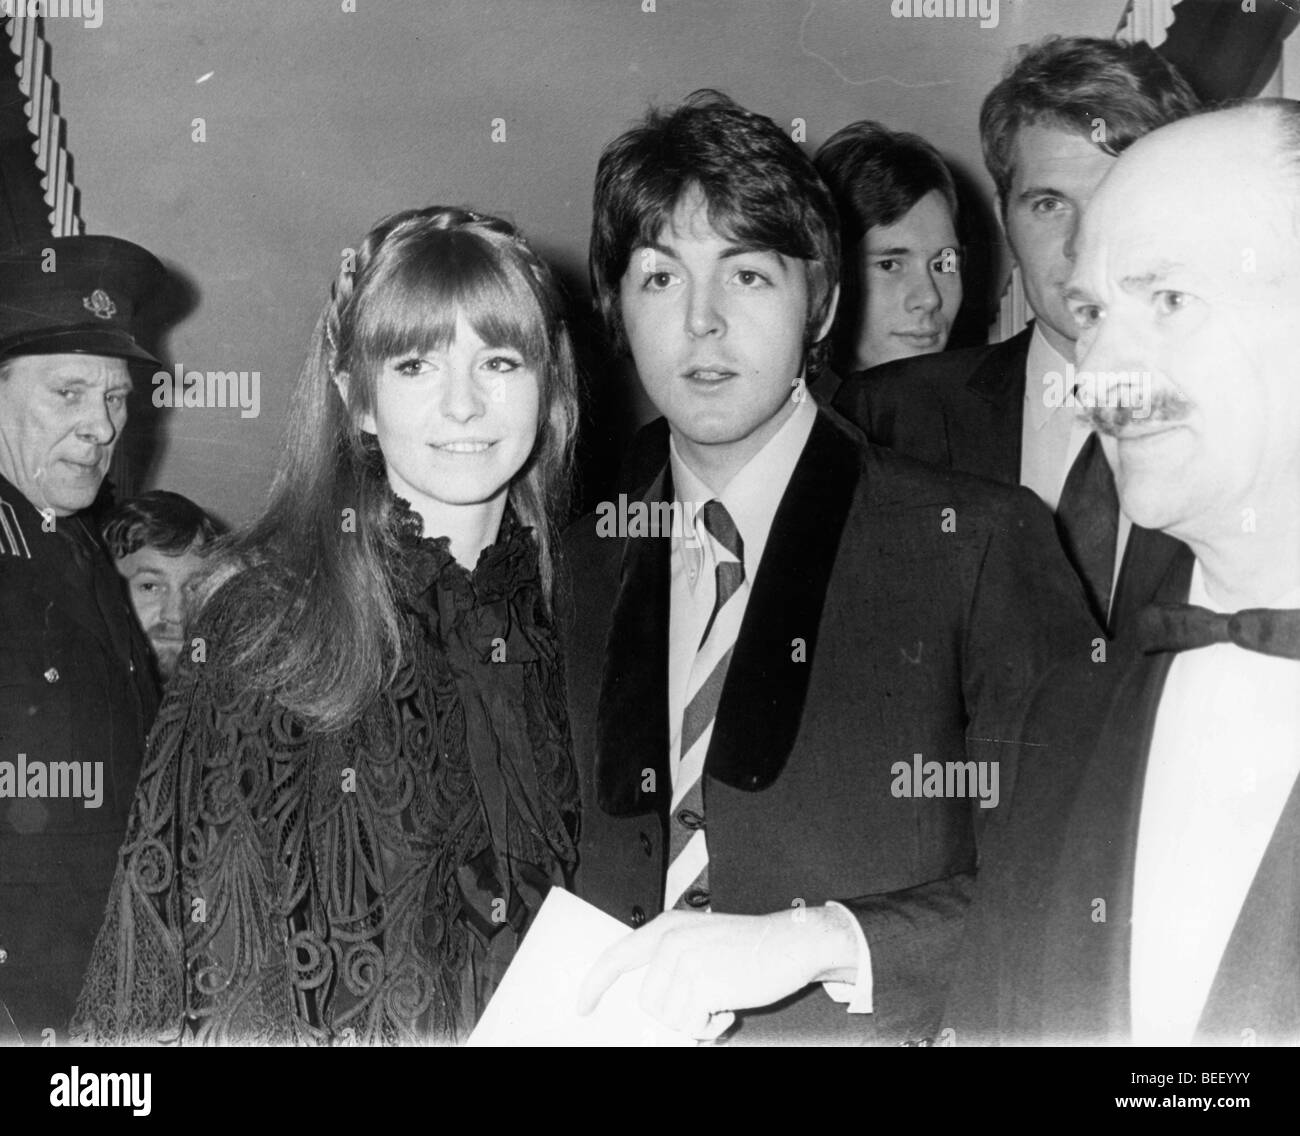 The Beatles Paul McCartney At Premiere With Jane Asher